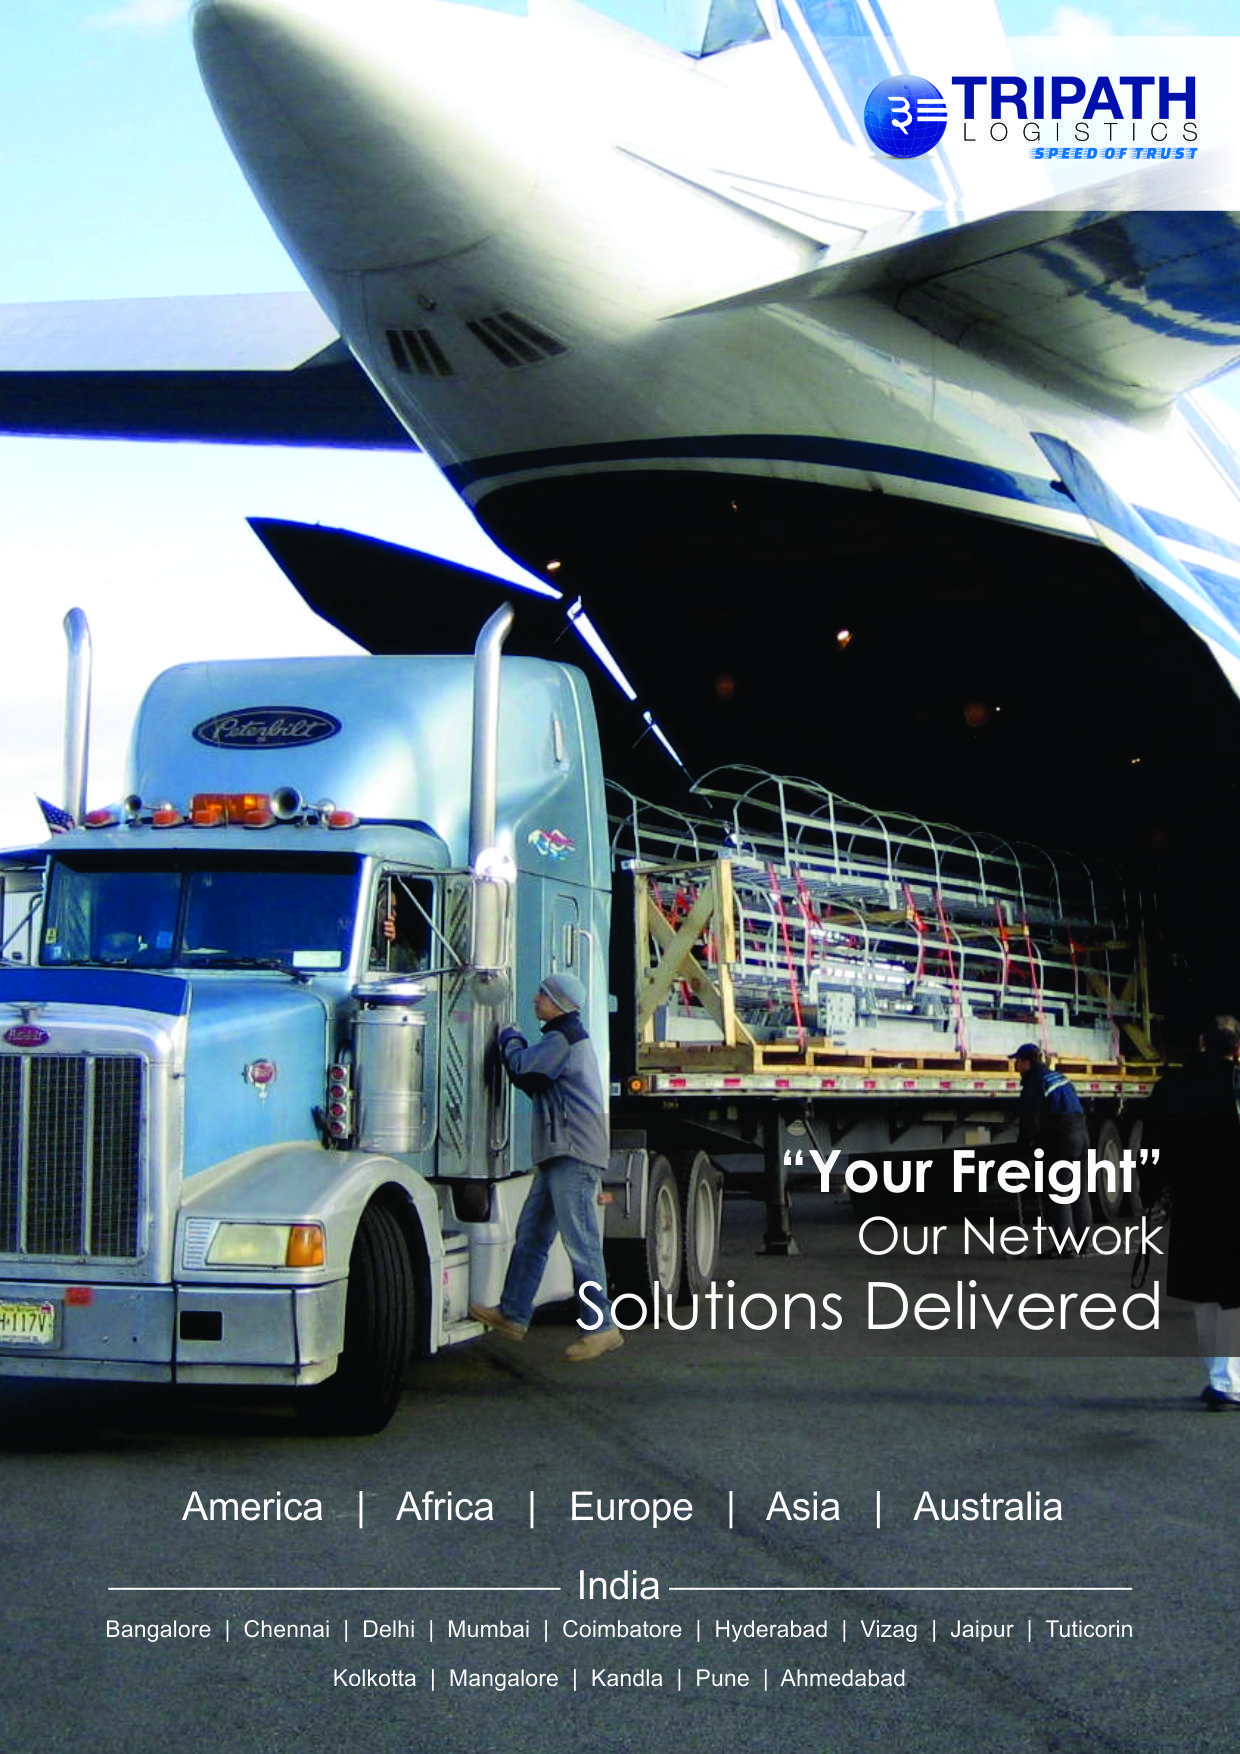 Tripath Logistics Covers A Large Network Of Agents And